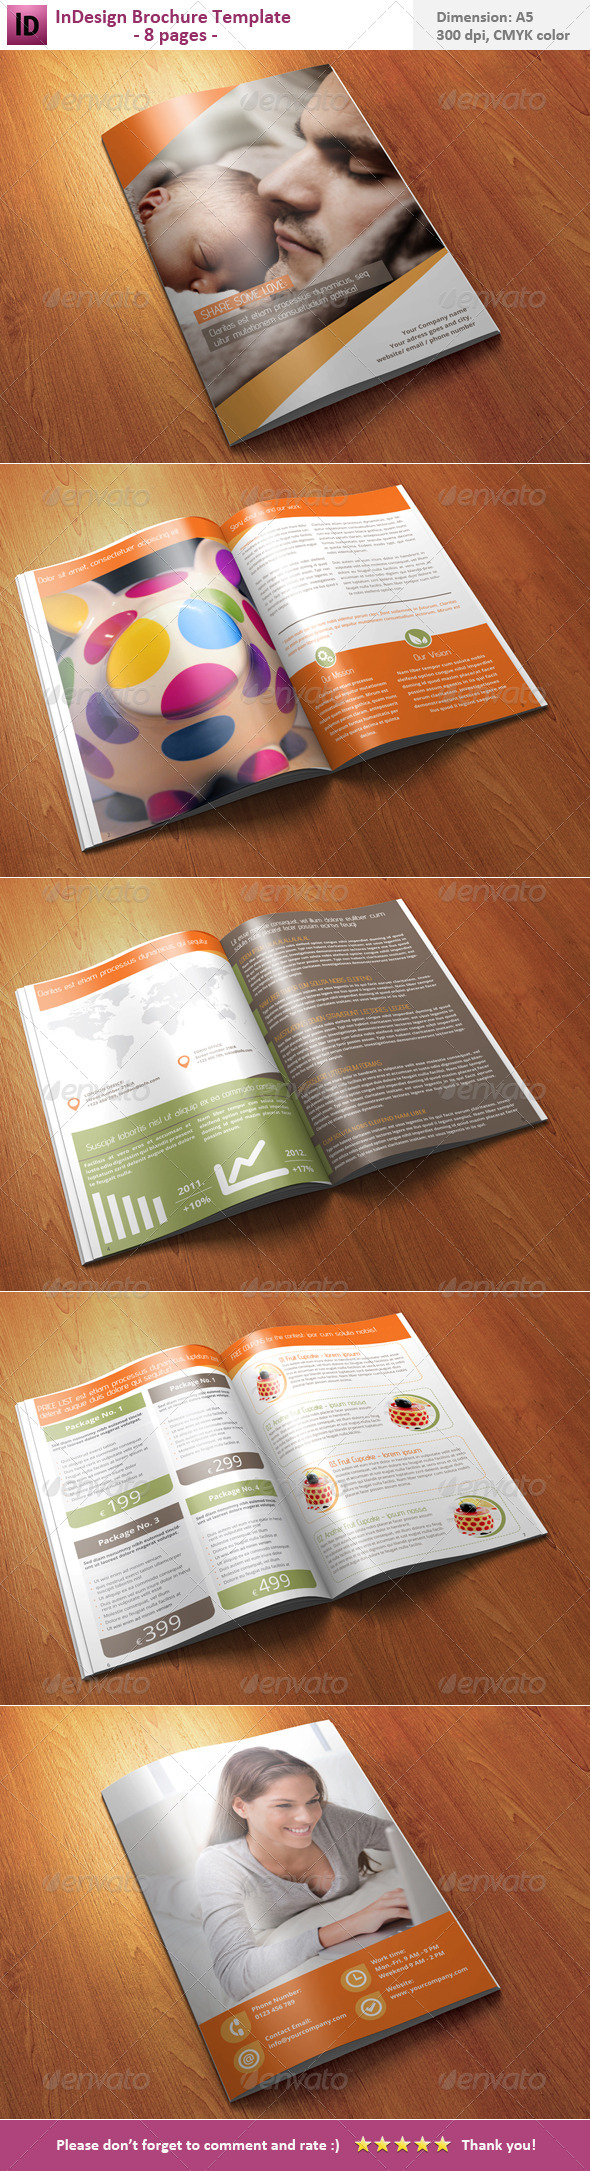 GraphicRiver InDesign Brochure Template 8 pages 3644215